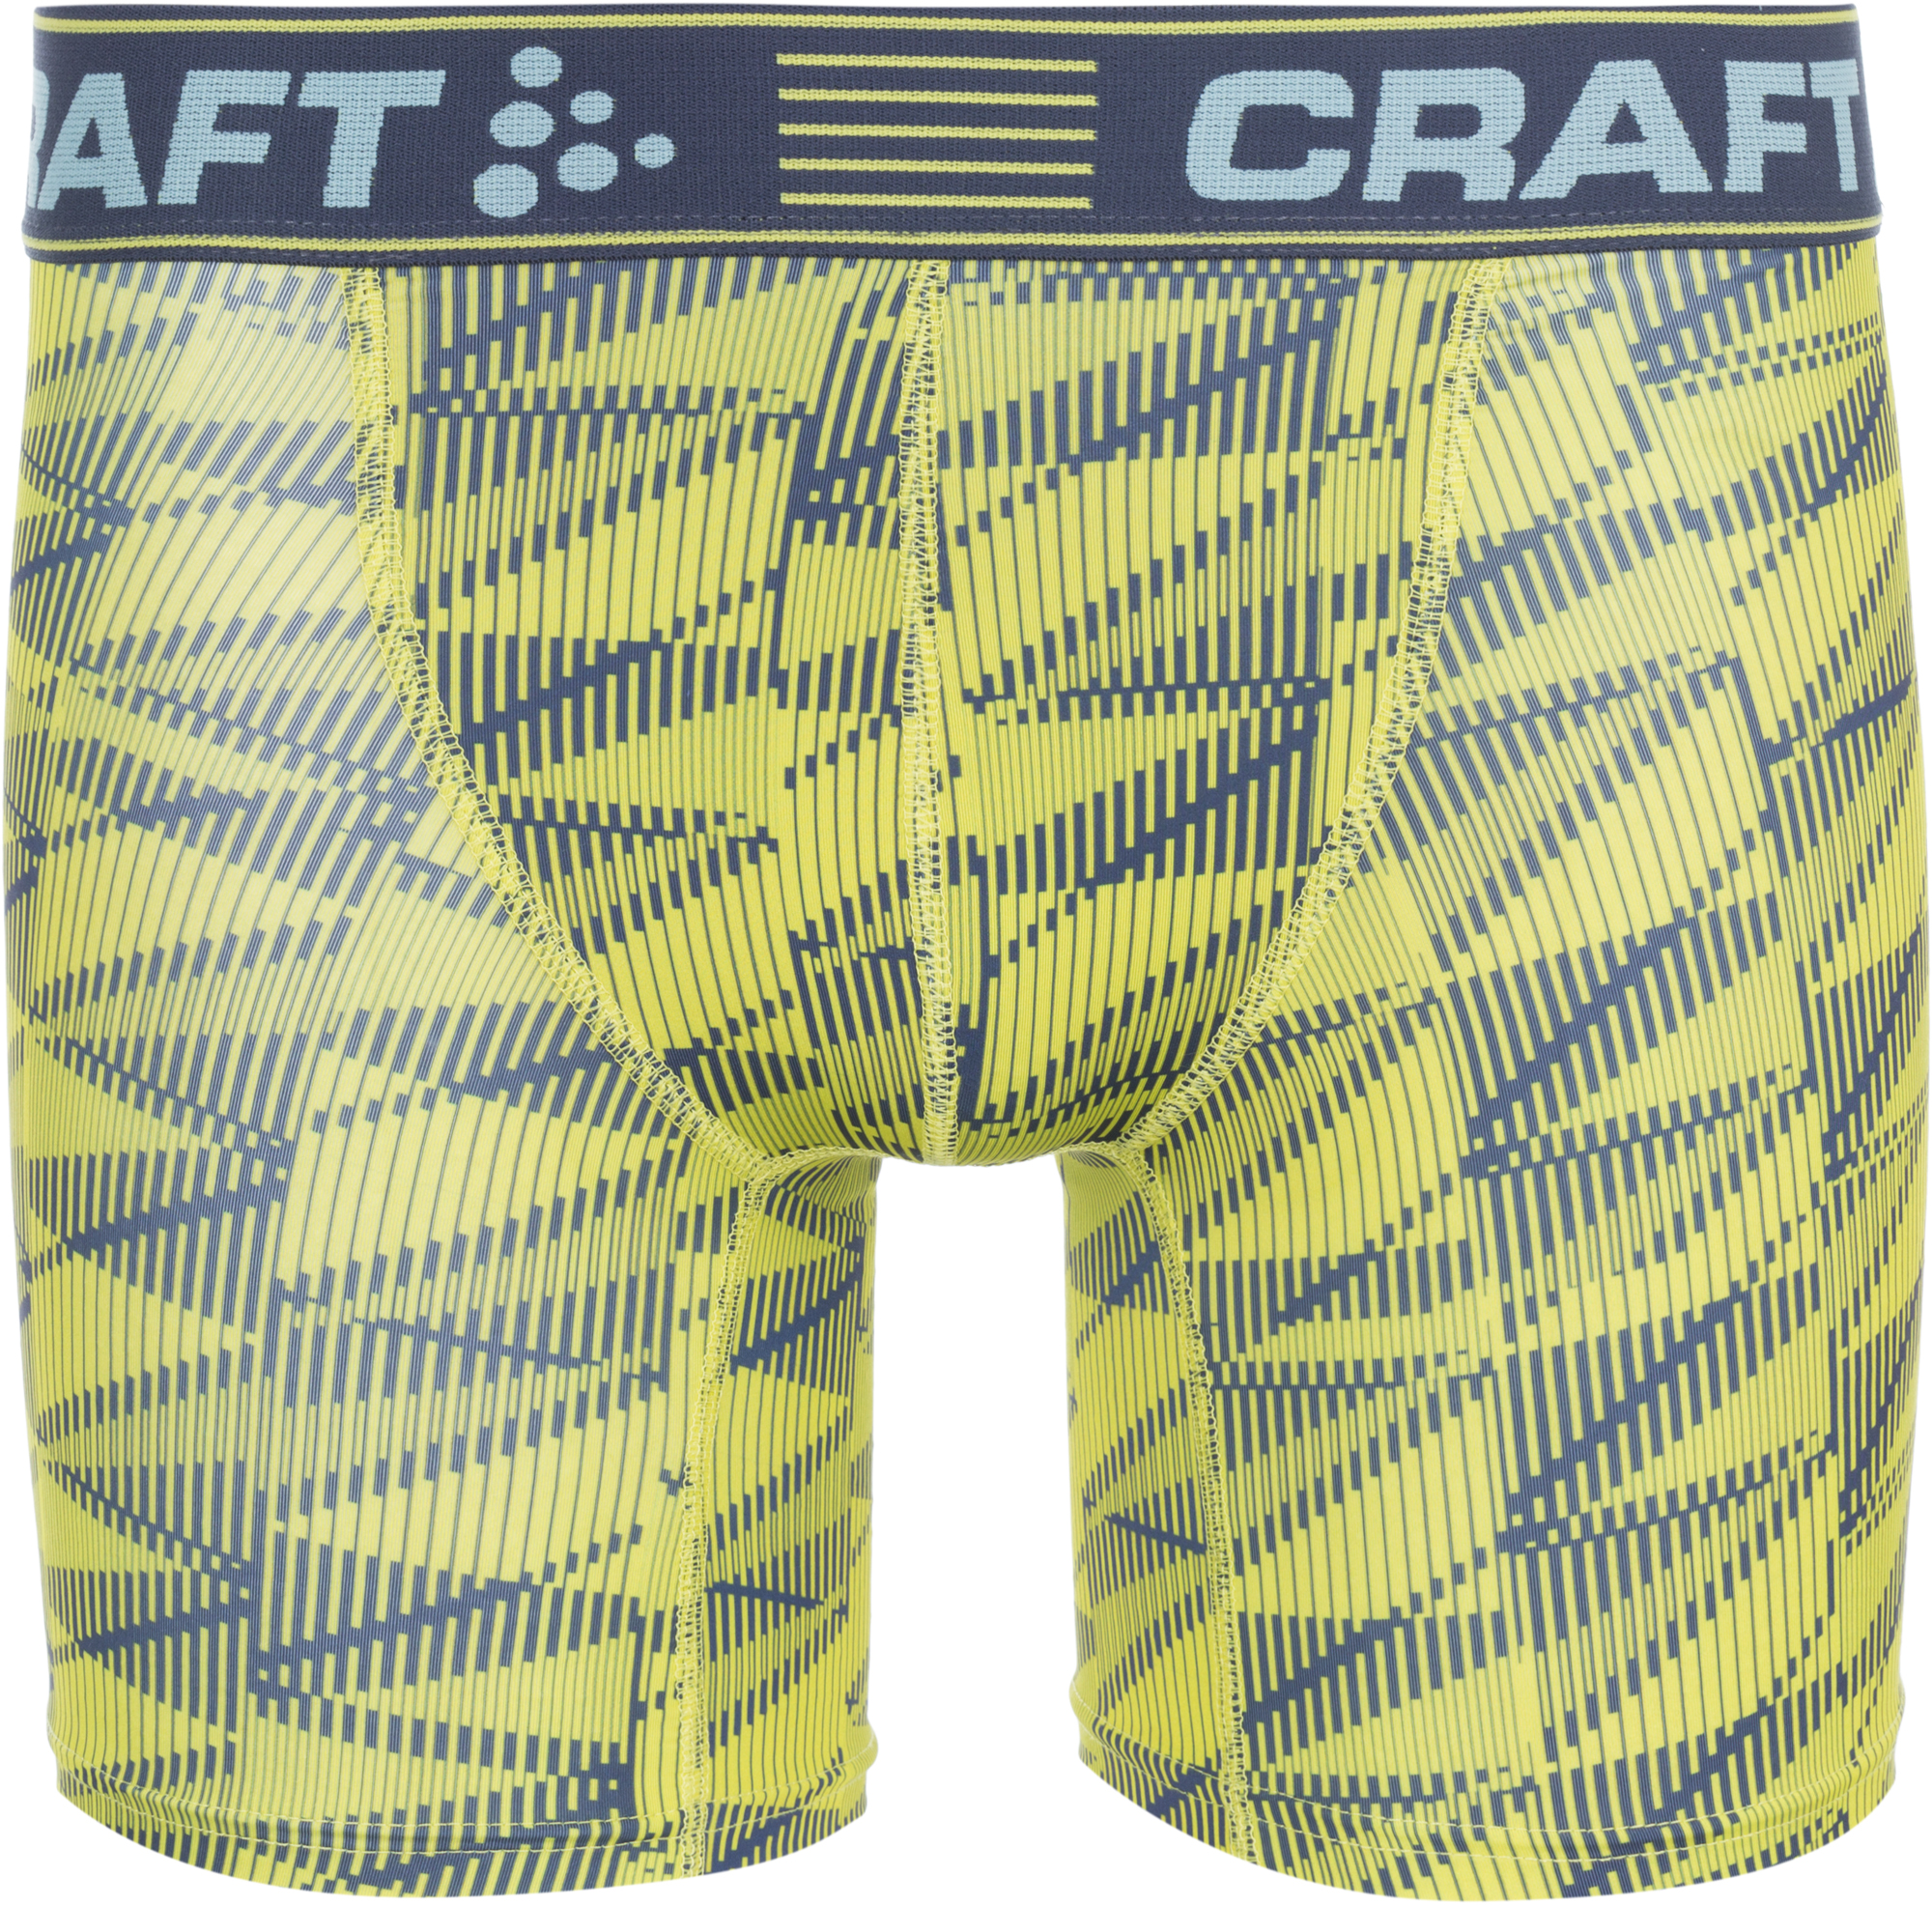 Craft Трусы мужские Craft Greatness Boxer 6-Inch 6es7321 1bl00 0aa0 6es7 321 1bl00 0aa0 compatible smatic s7 300 plc fast shipping